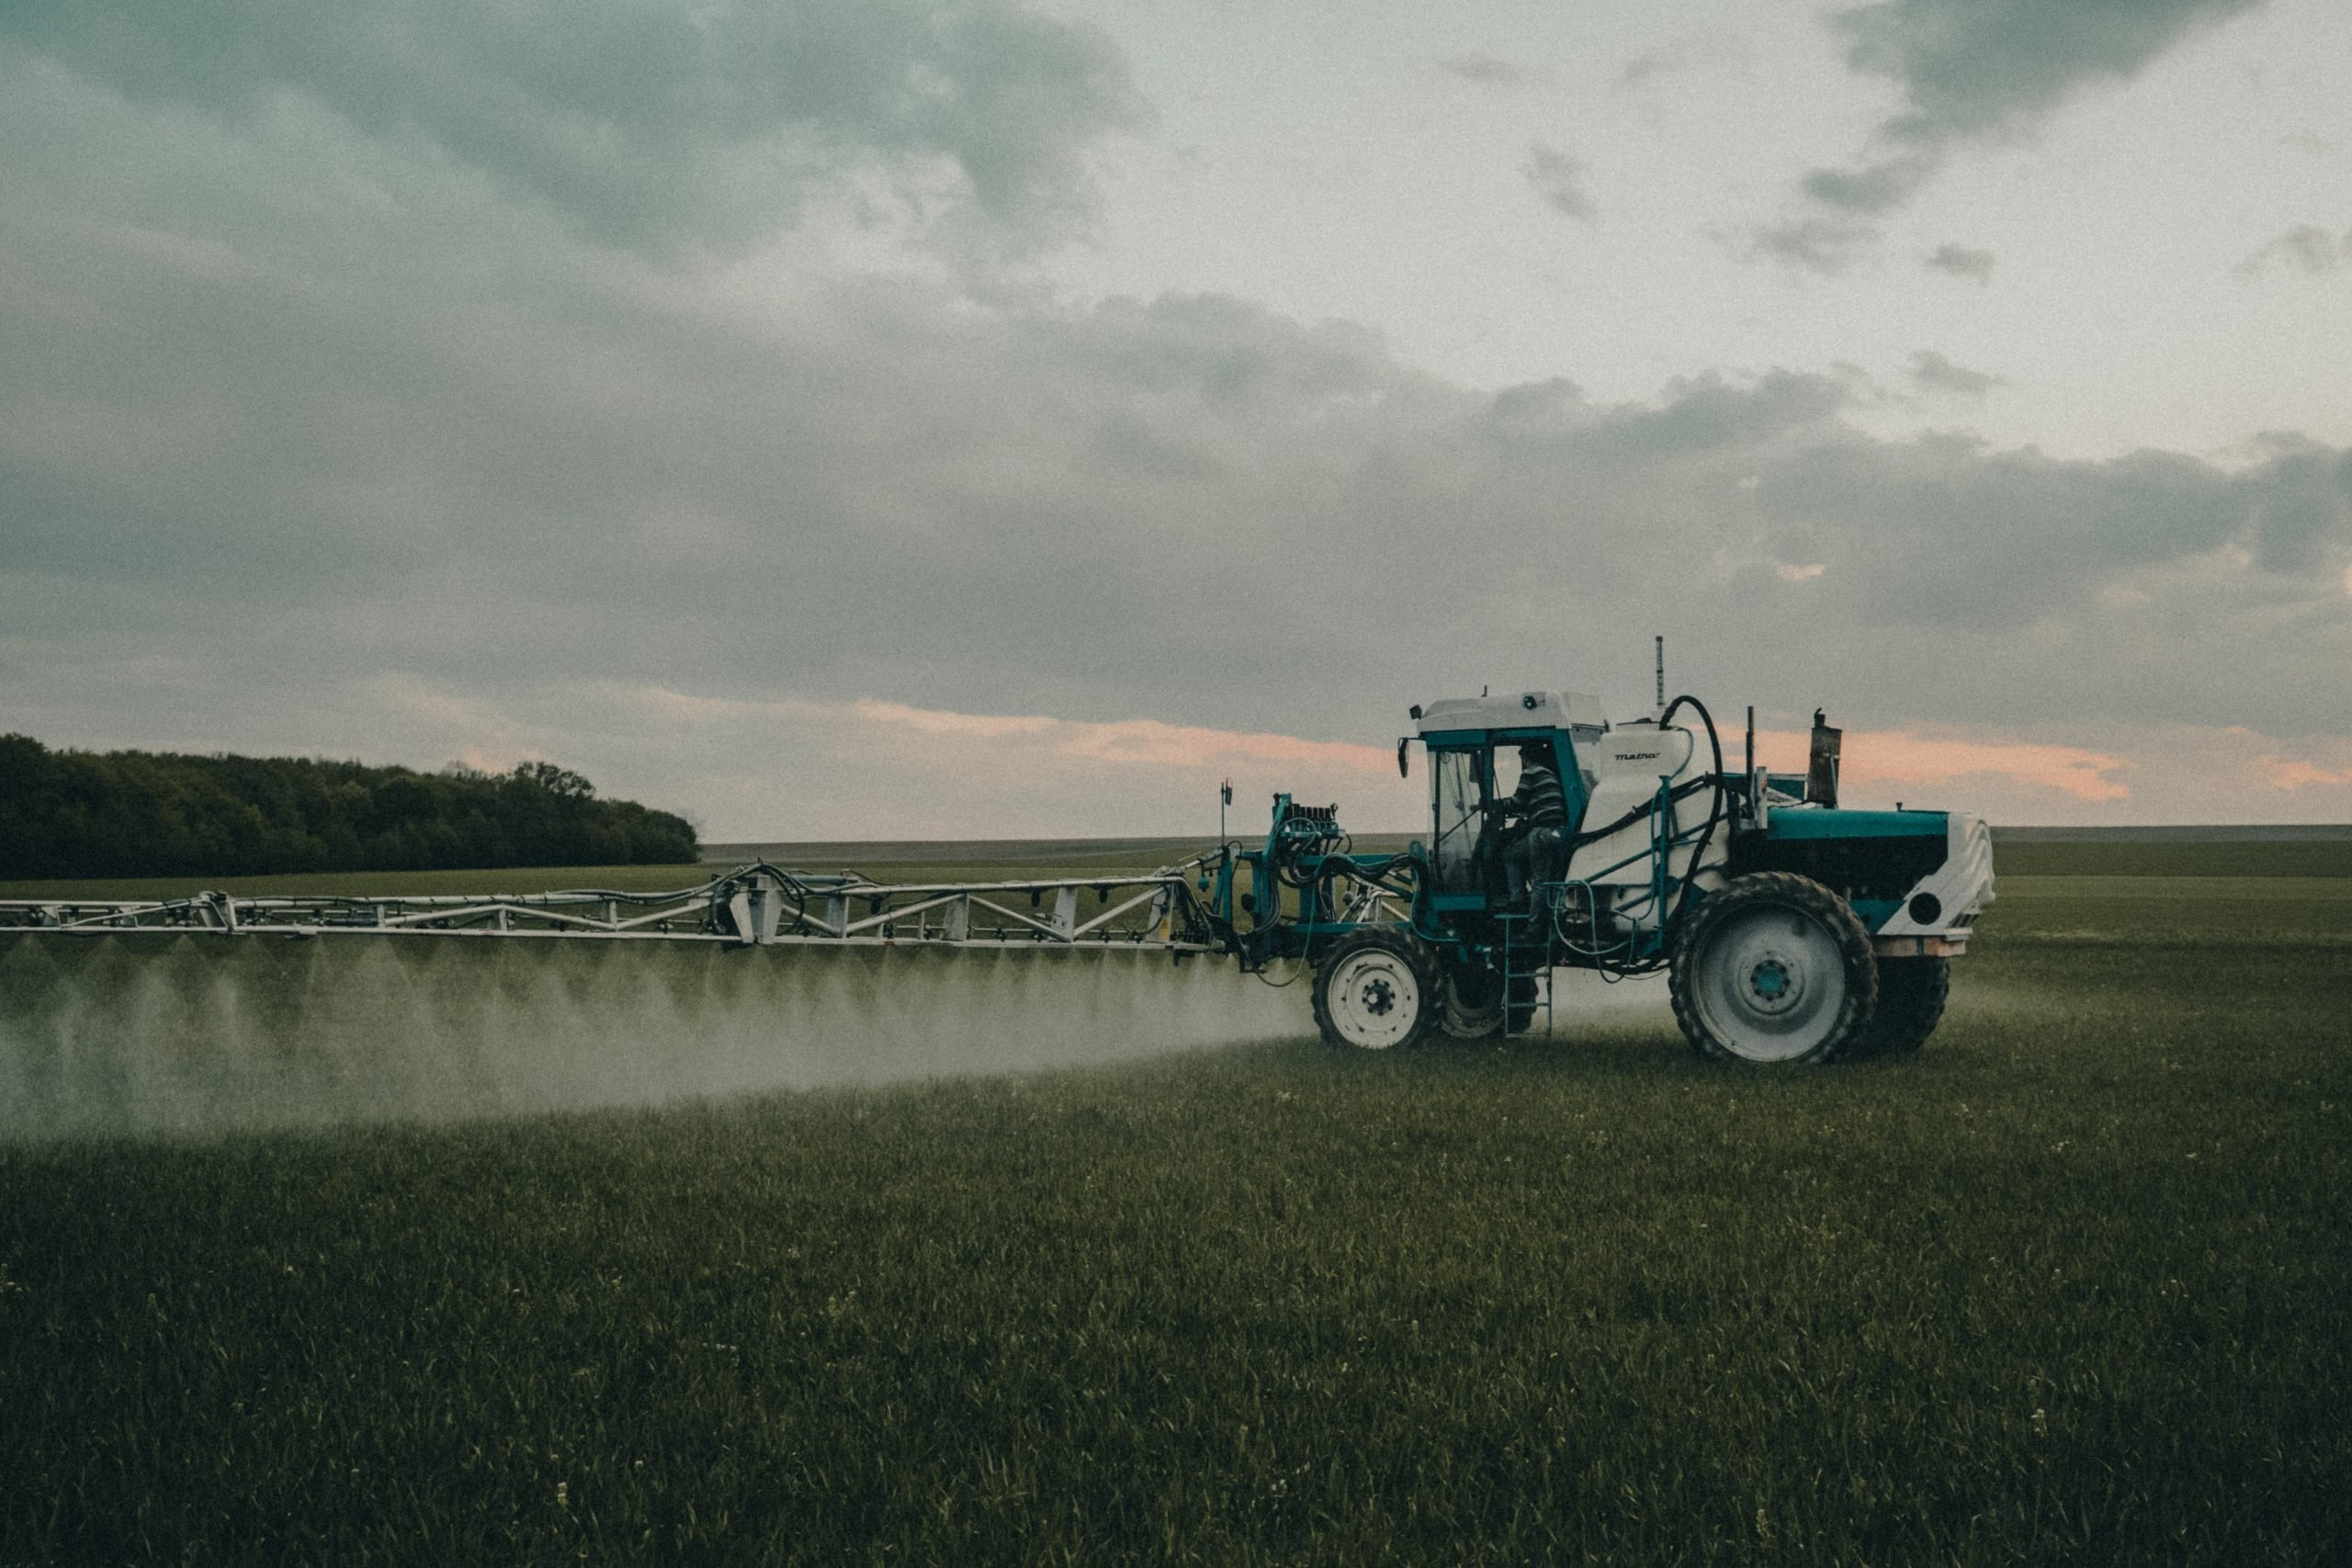 A tractor spraying a herbicide